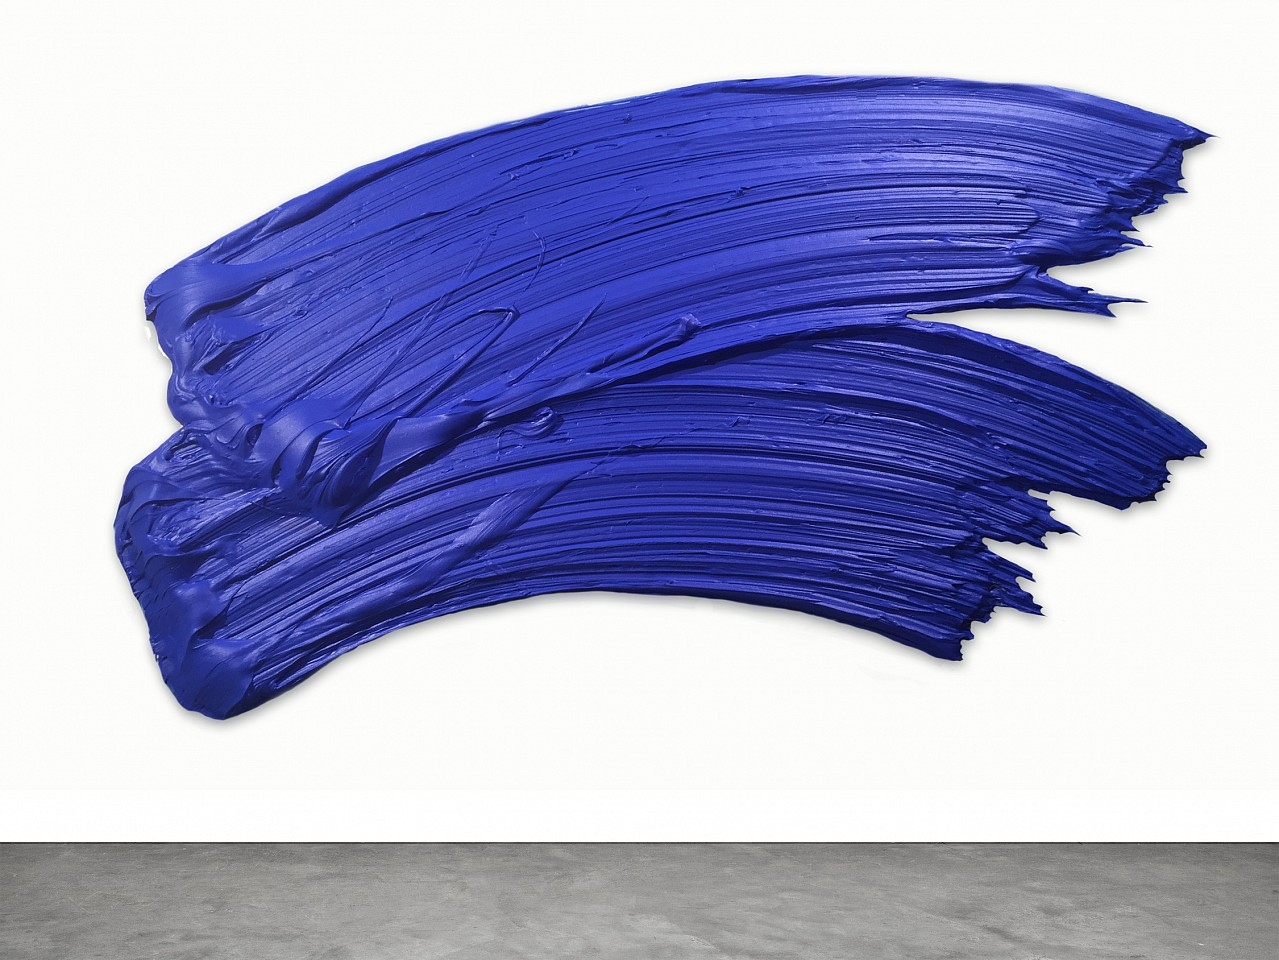 Donald Martiny ,   Shudit  ,  2016     polymer and pigment on aluminum ,  37 x 64 x 4 in. (94 x 162.6 x 10.2 cm)     MART0014